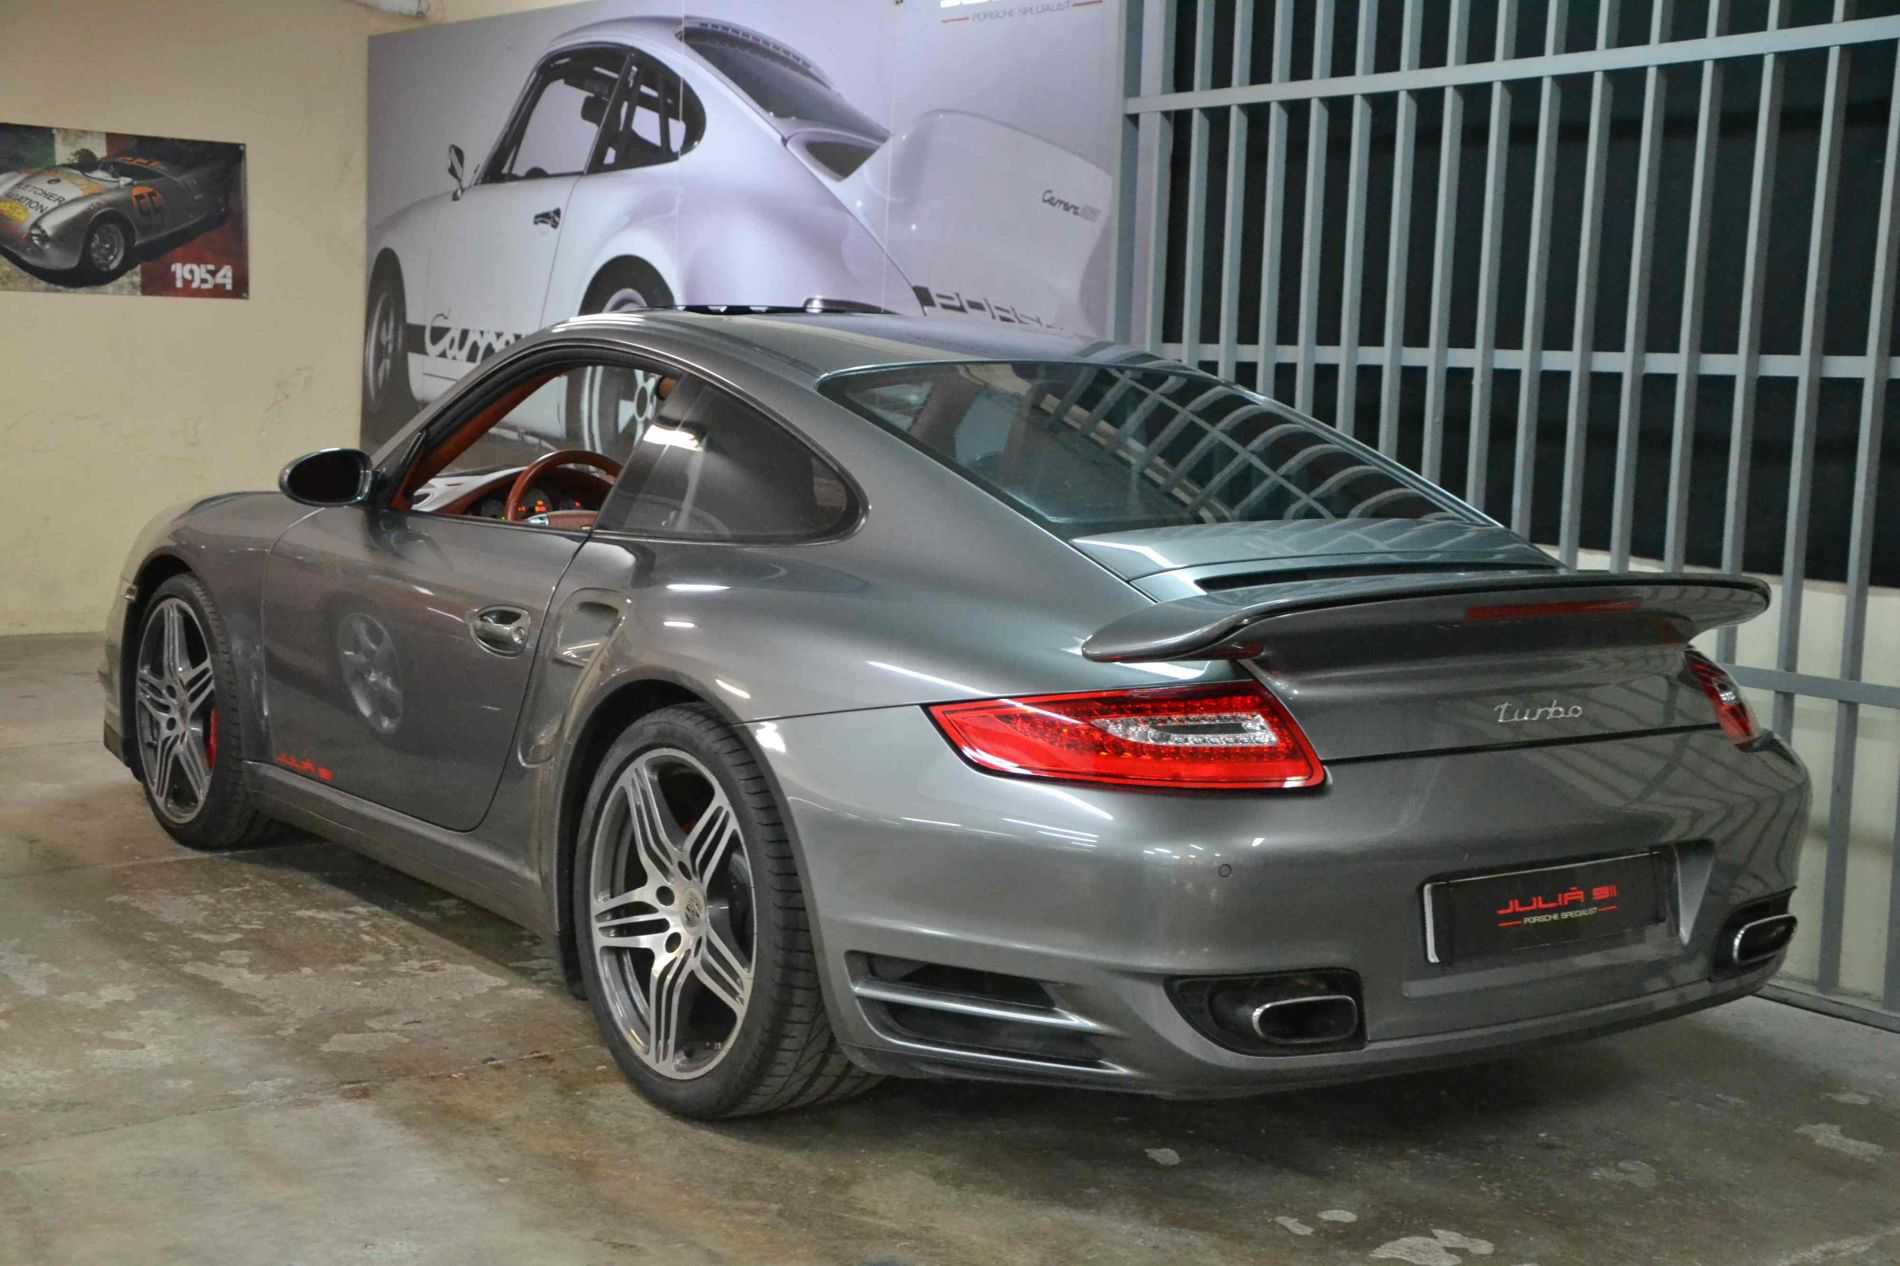 porsche 997 turbo tiptronic 07 juli 911. Black Bedroom Furniture Sets. Home Design Ideas